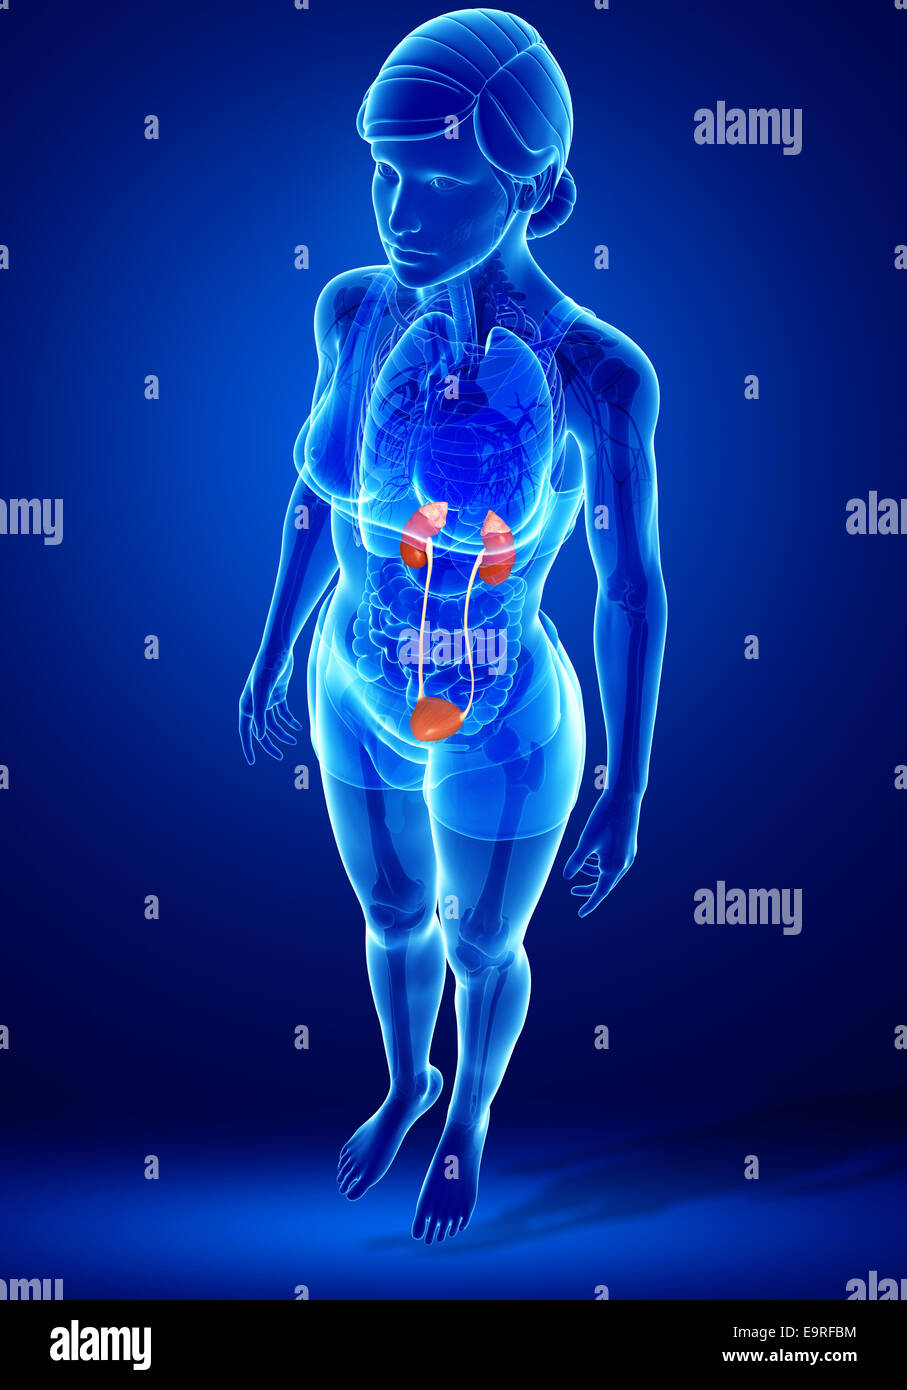 Illustration Of Female Urinary System Stock Photo 74890360 Alamy